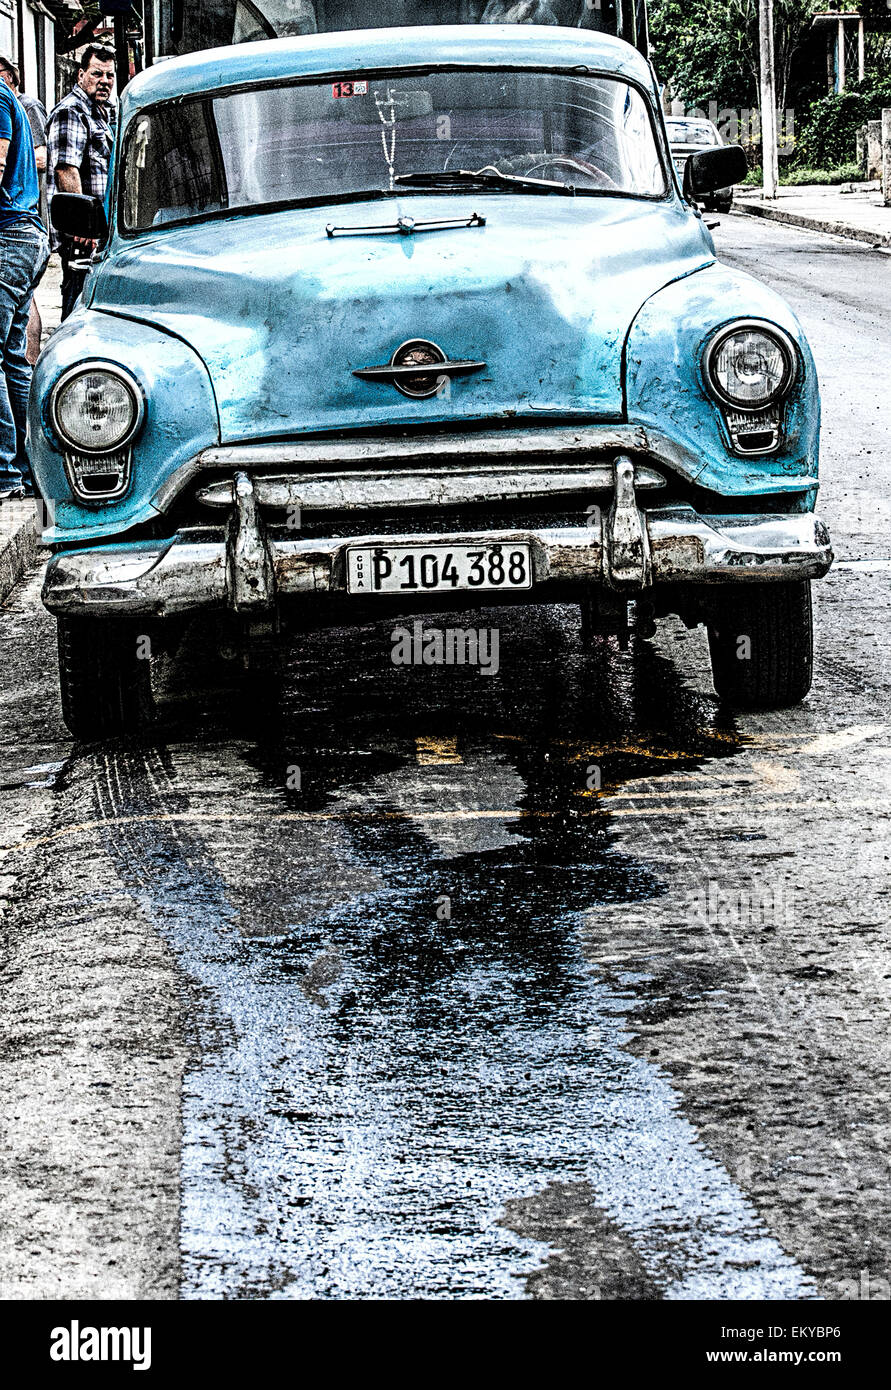 Car Leaking Oil >> Old American Blue Car With A Major Oil Leak And Oil Leaking Downhill